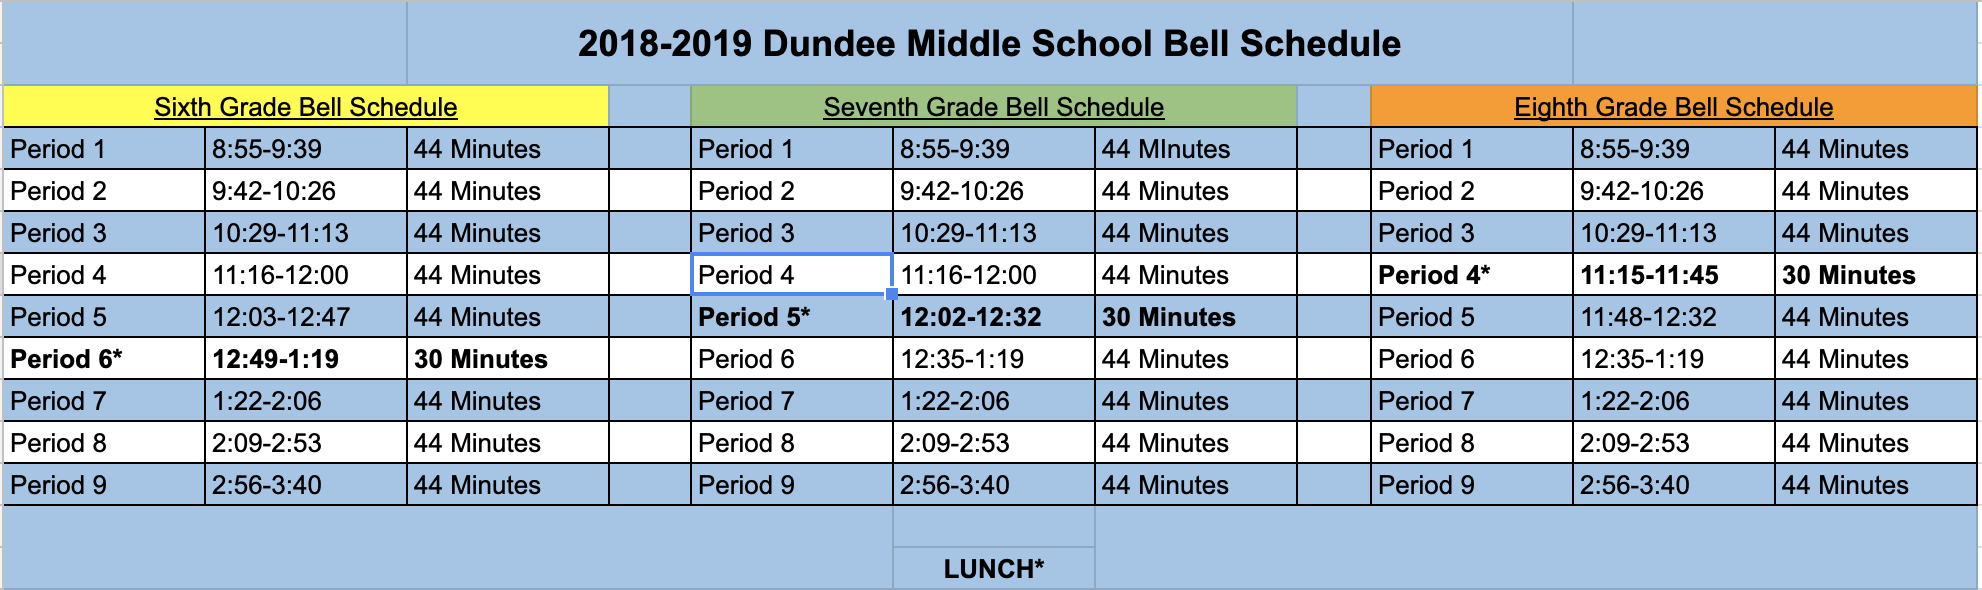 DMS Regular Day Bell Schedule